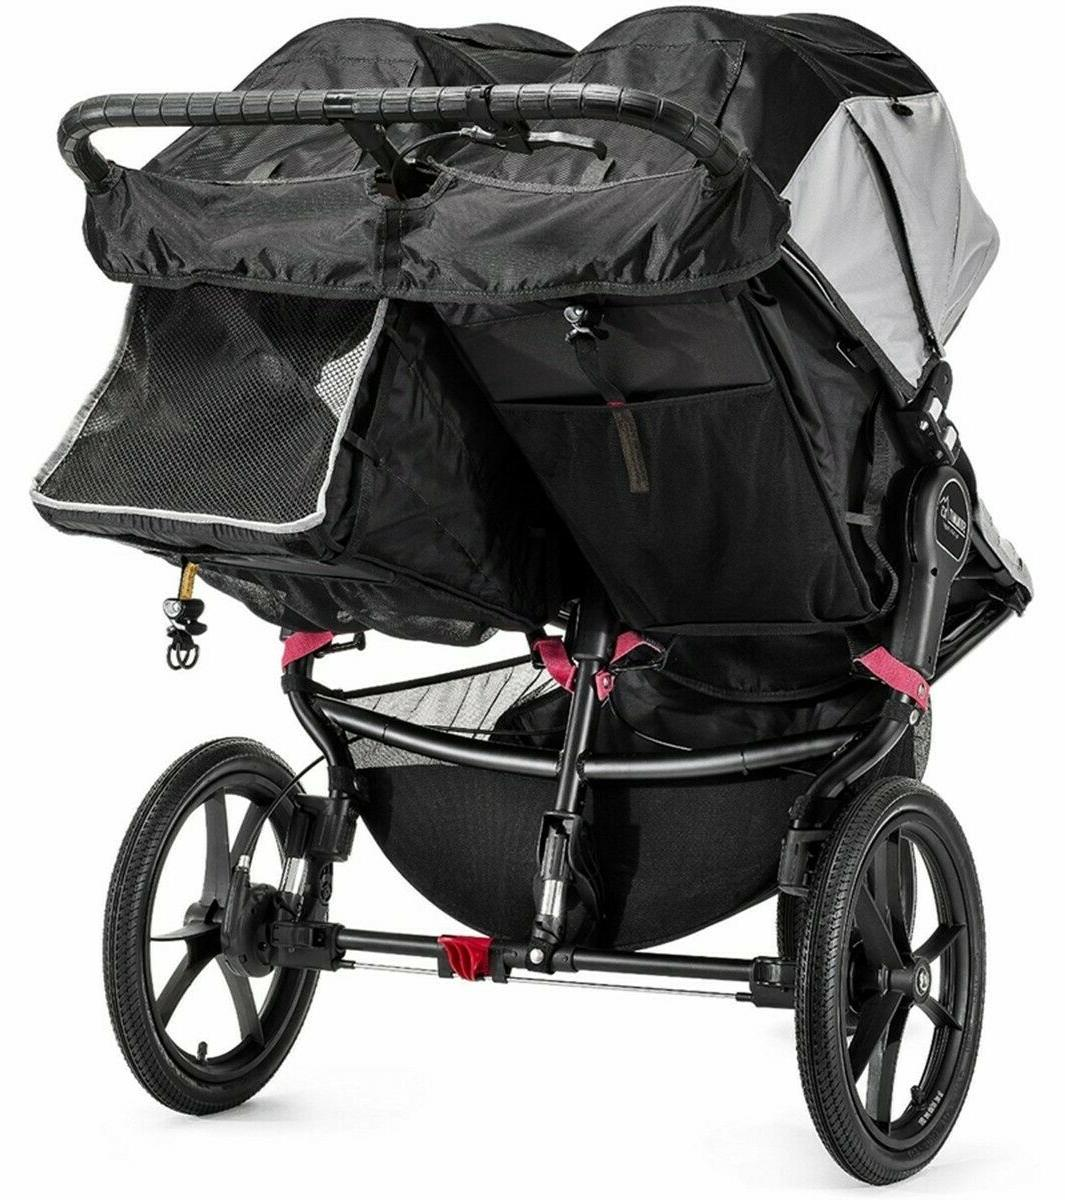 Baby Double Stroller Summit X3 Infant Jogging - Gray/Black